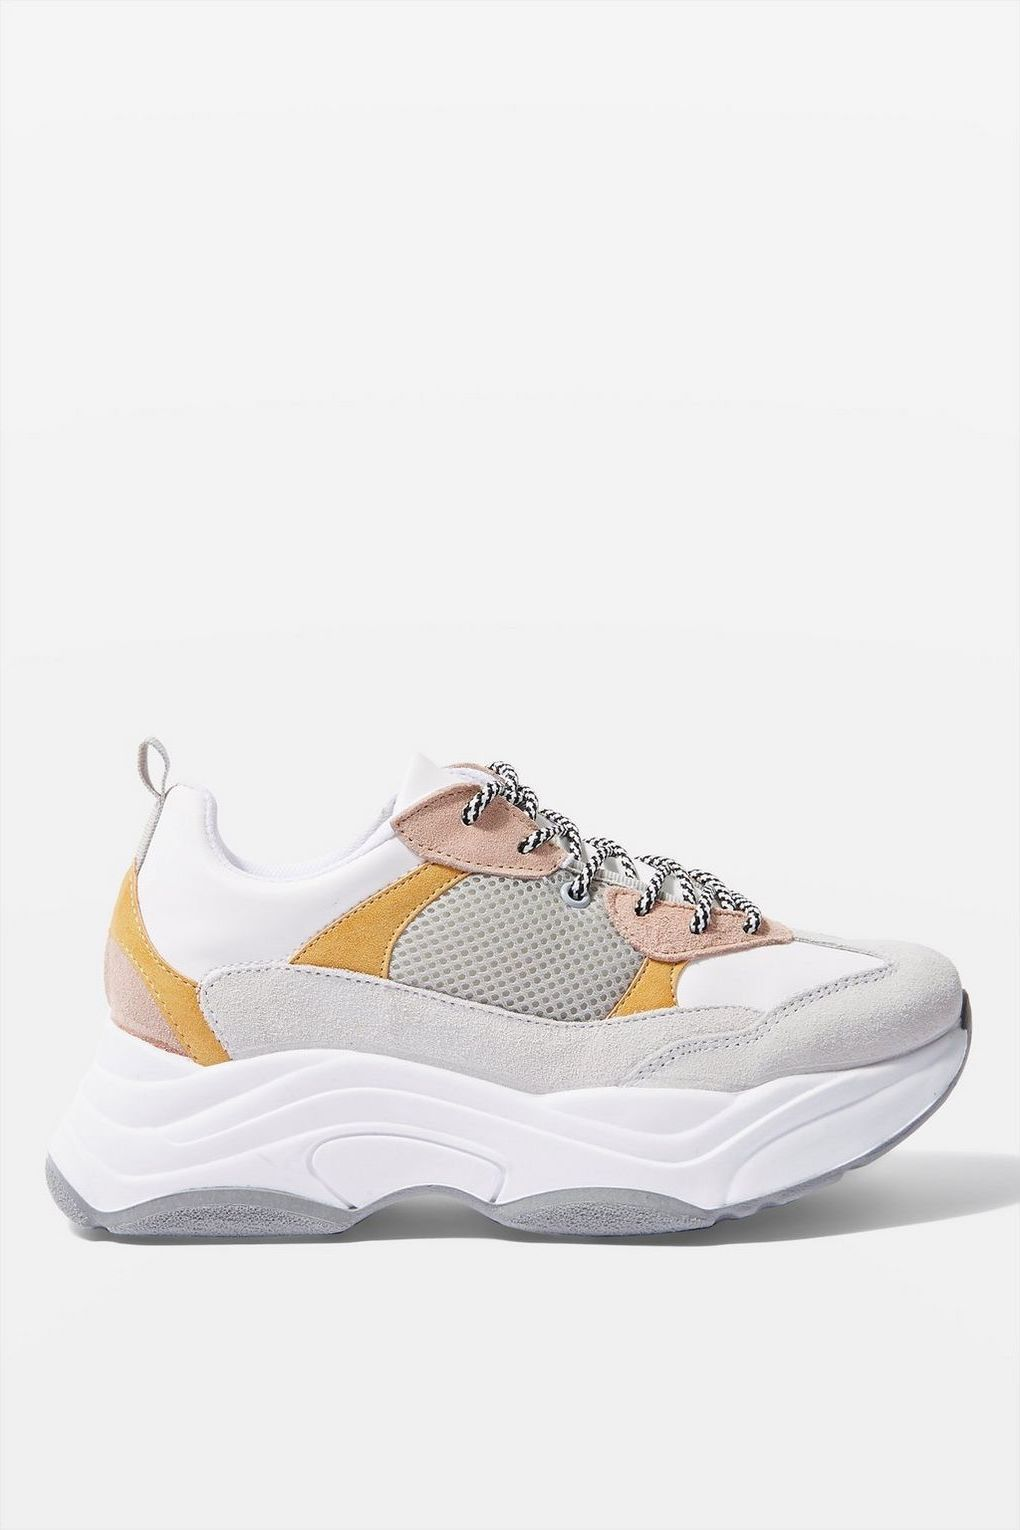 f529fa351a CIARA Chunky Trainers in 2019 | Shoes | Shoes, Fashion shoes ...